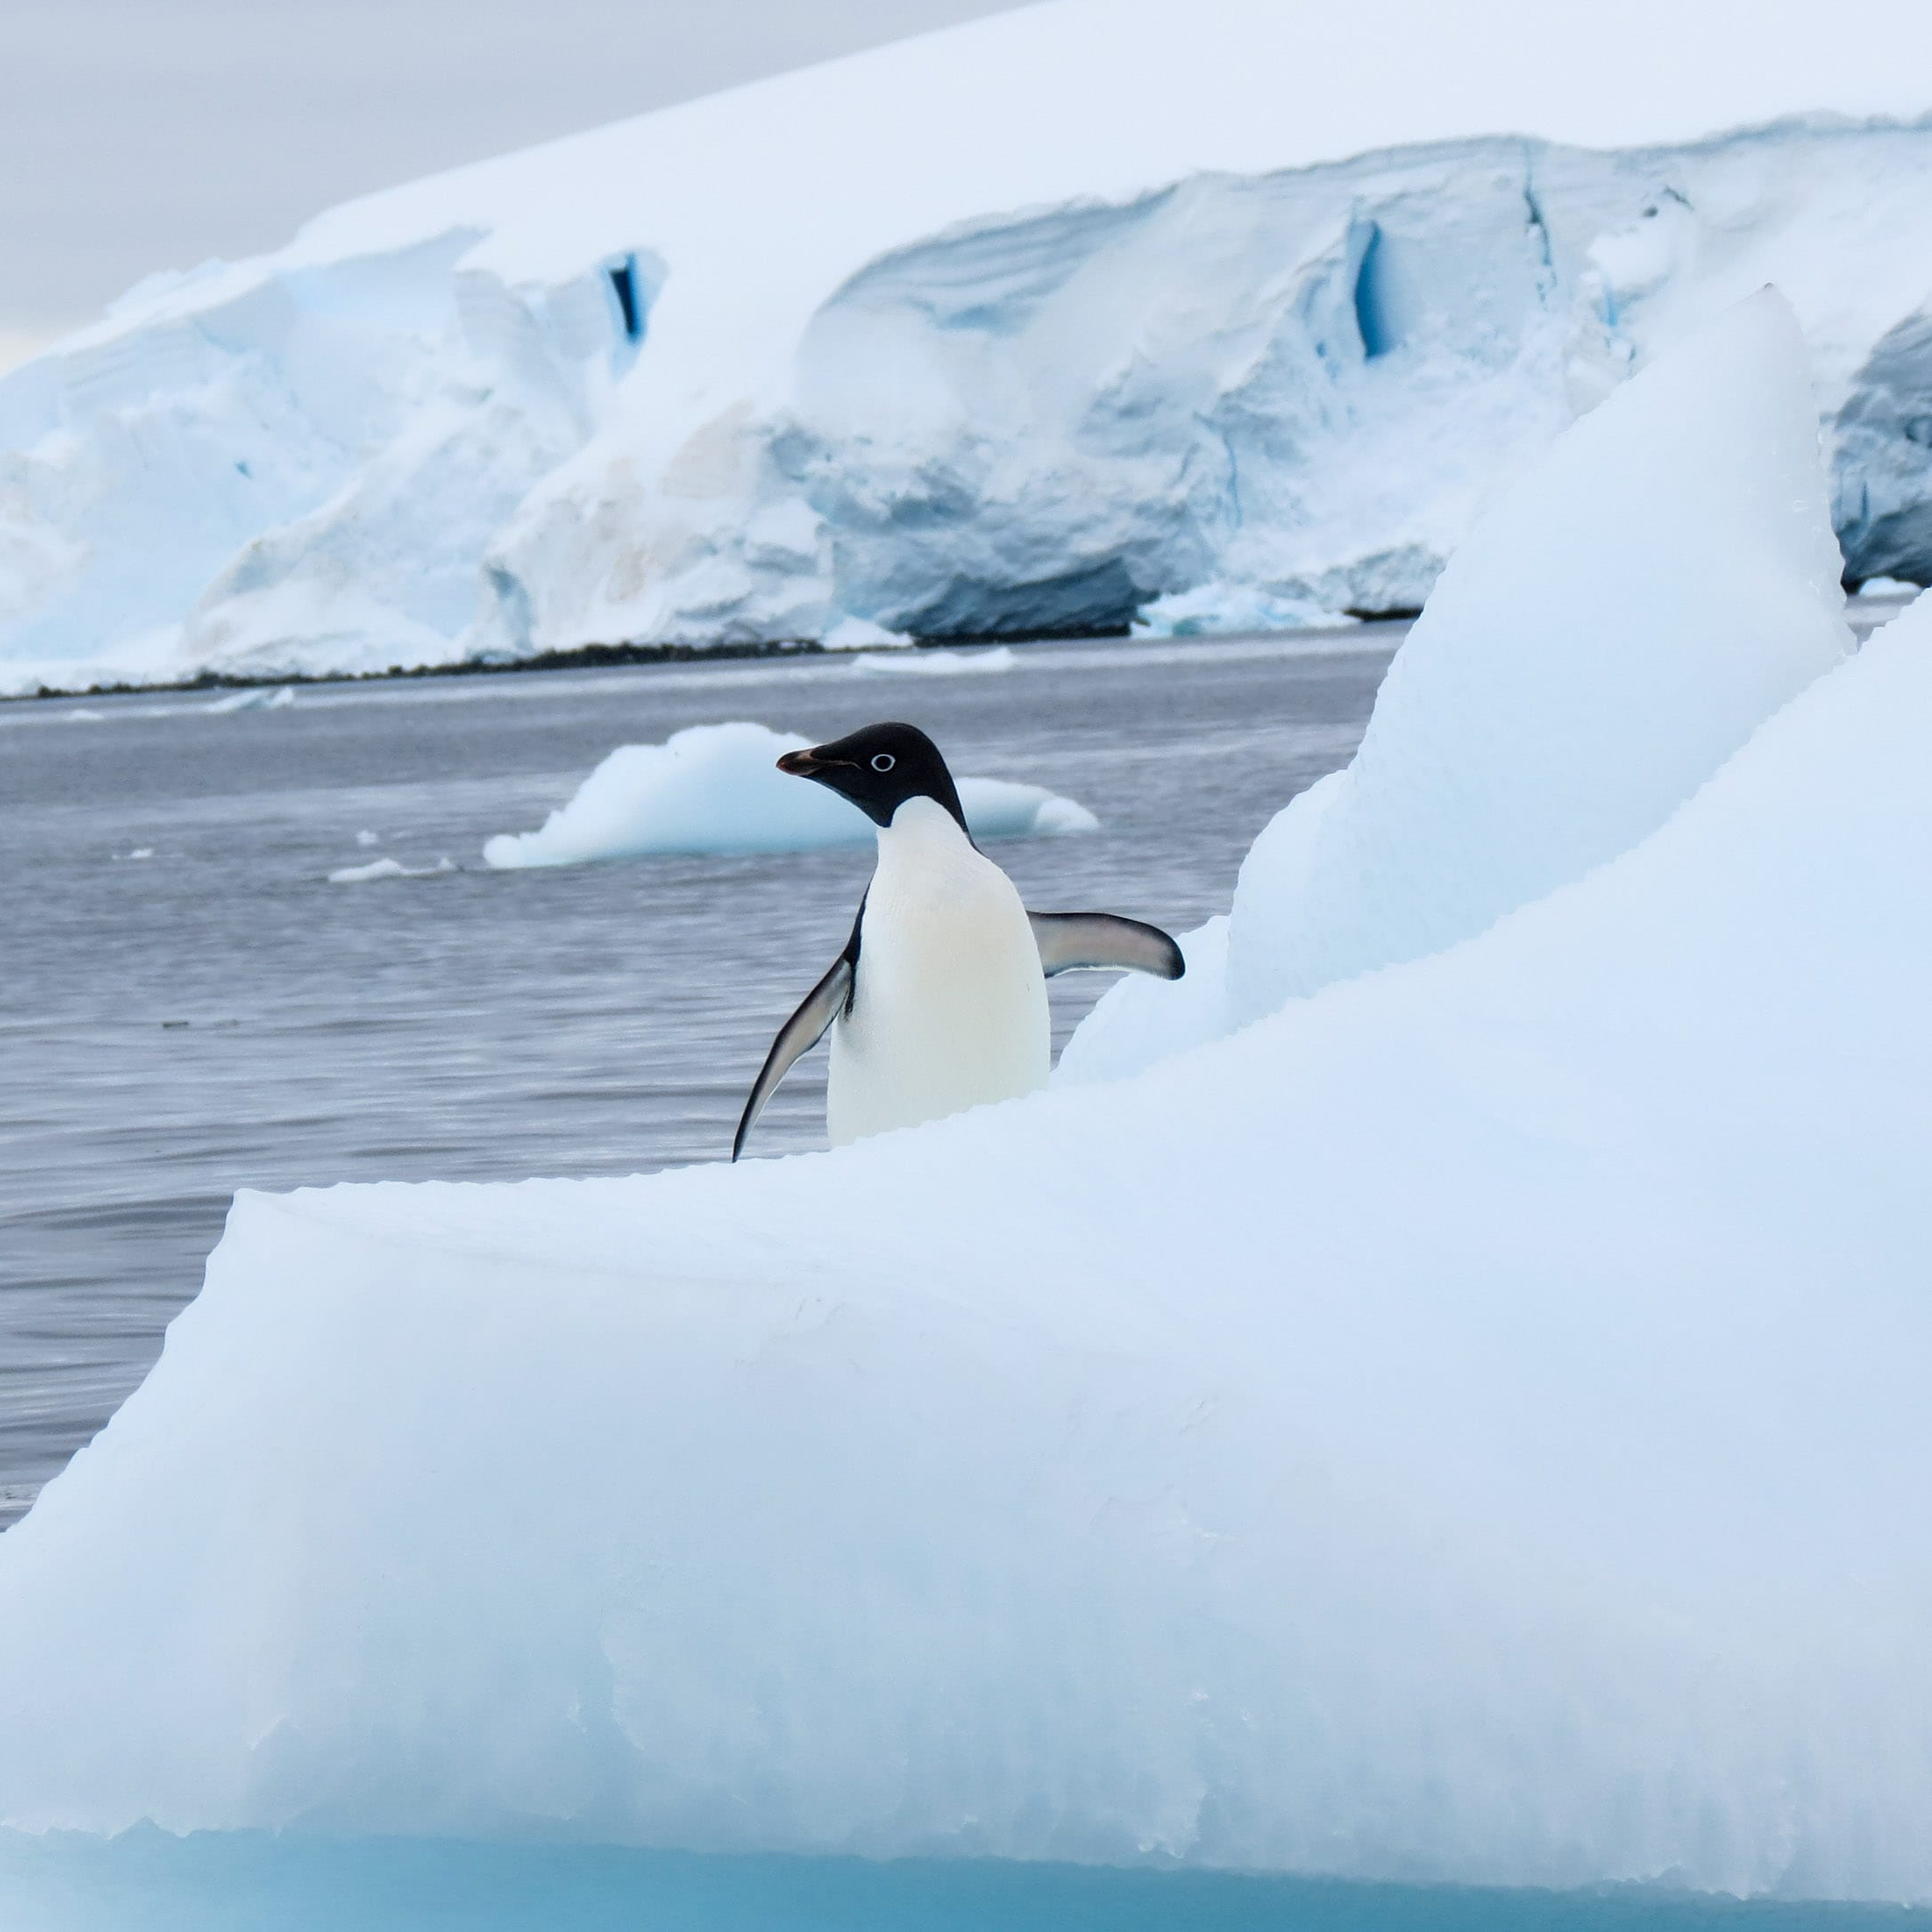 Penguin sits on iceberg with wings out in Antarctica